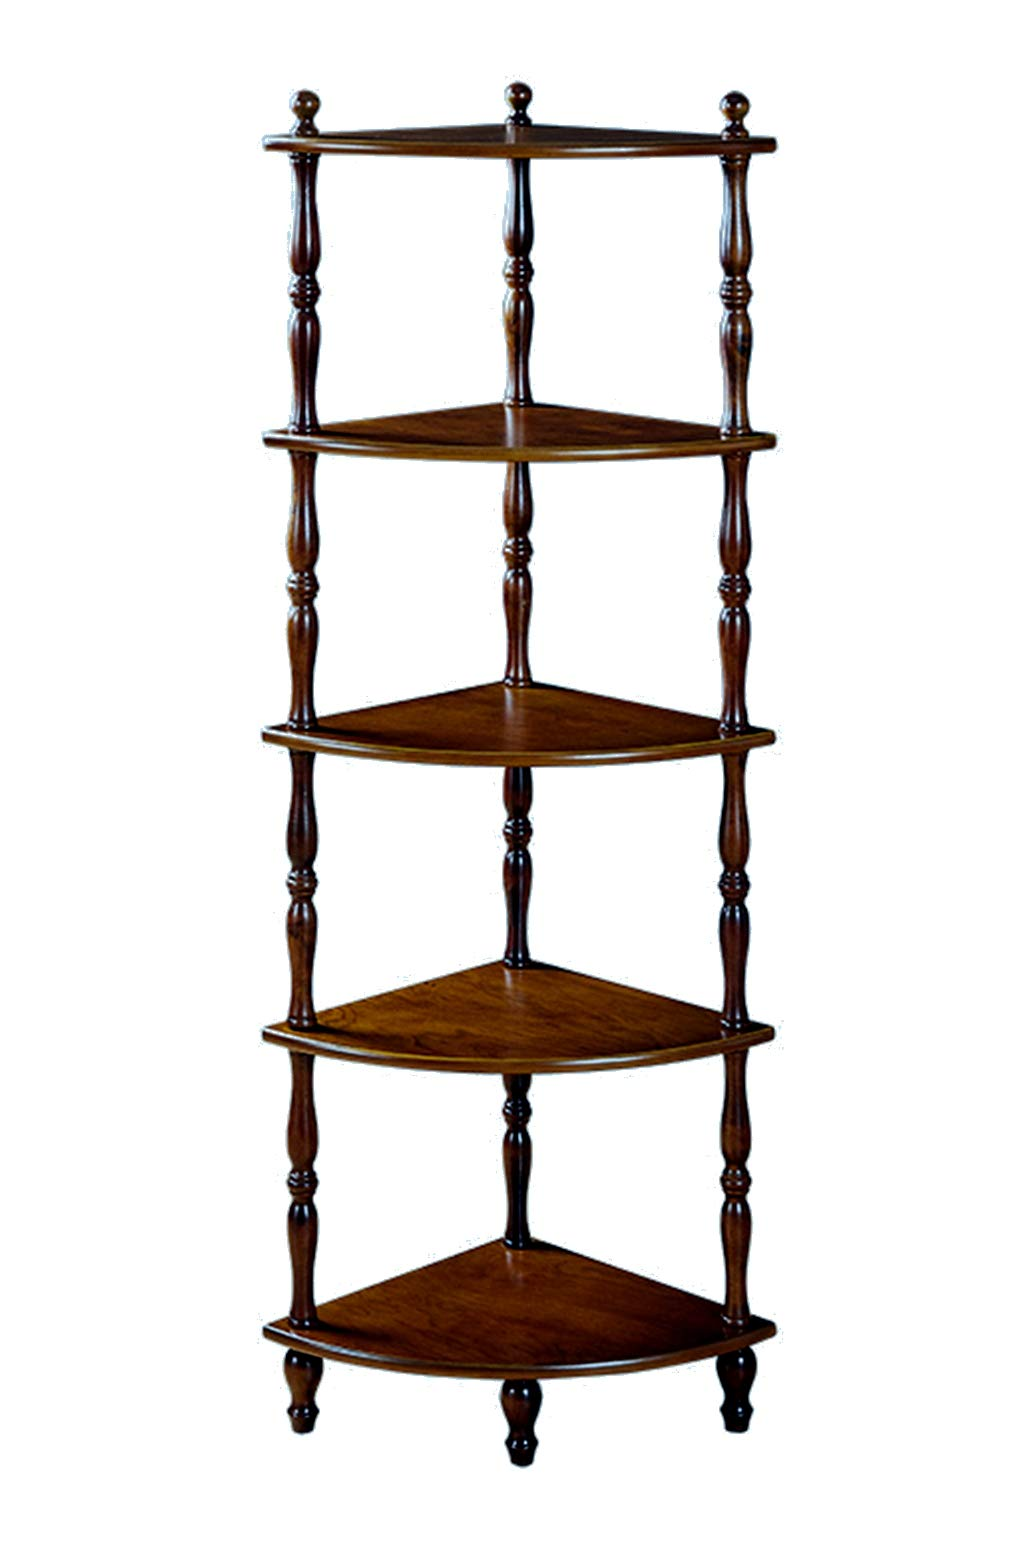 HAFurniture Classic 5 Tier Bookcase Shelf, Elegant Stand Wooden Rustic Corner Shelves Rack with 4 Leg Supports (Black Walnut) by HAFurniture